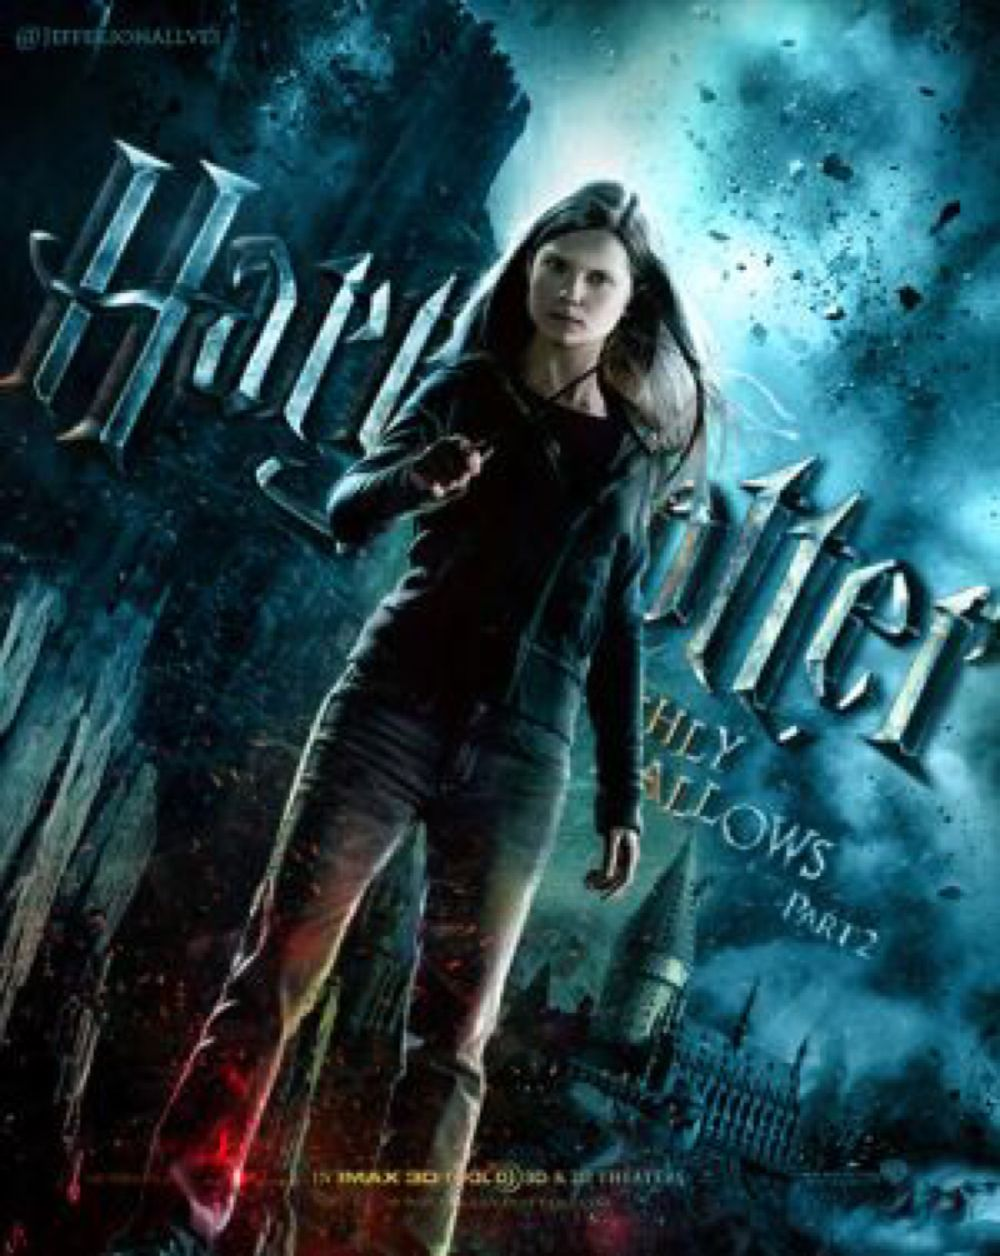 Ginny Deathly Hallows Part 2 By Jefferson Hp On Deviantart Ginny Weasley Harry Potter Ginny Harry Potter Characters